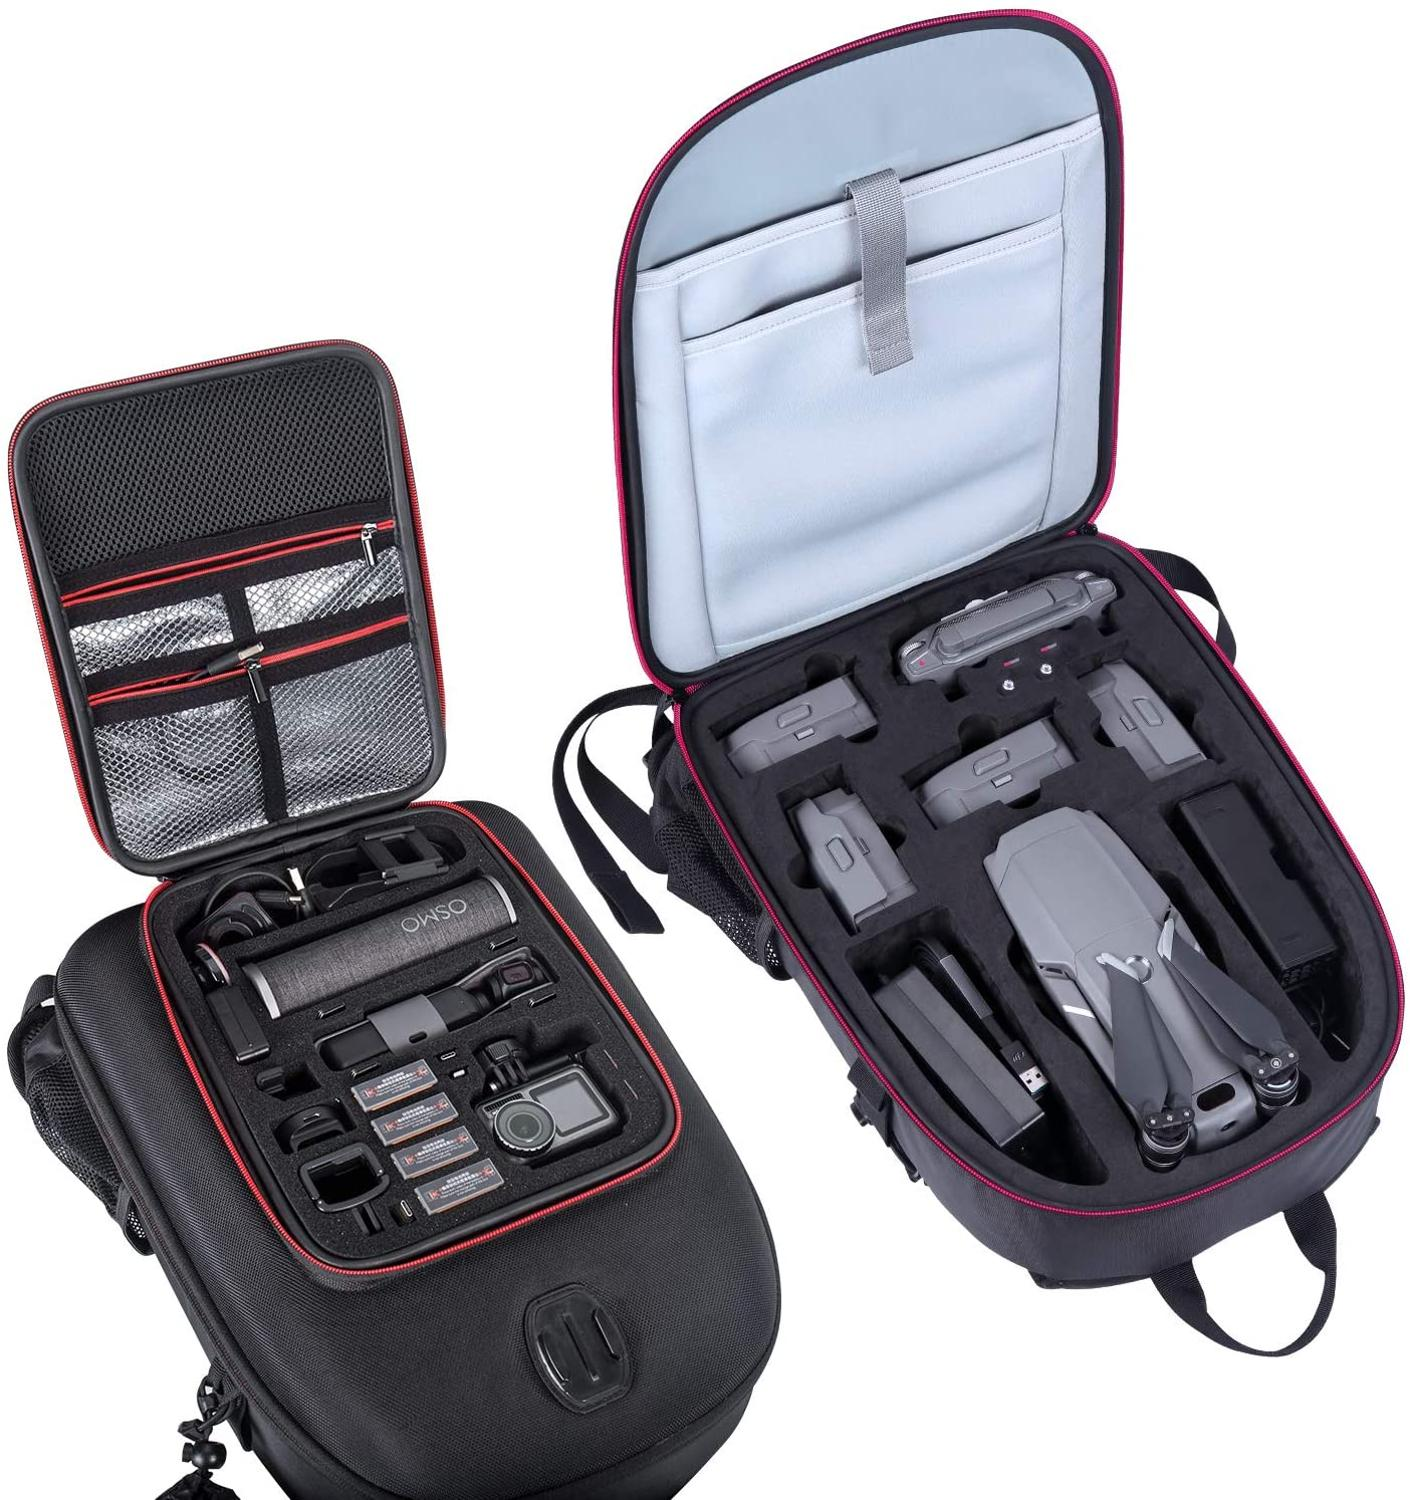 Smatree Backpack for DJI Mavic 2 Pro/Zoom for DJI OSMO Pocket/OSMO Action/Gopro 7/6/5/4/3/3+Camera/Video Bags   -